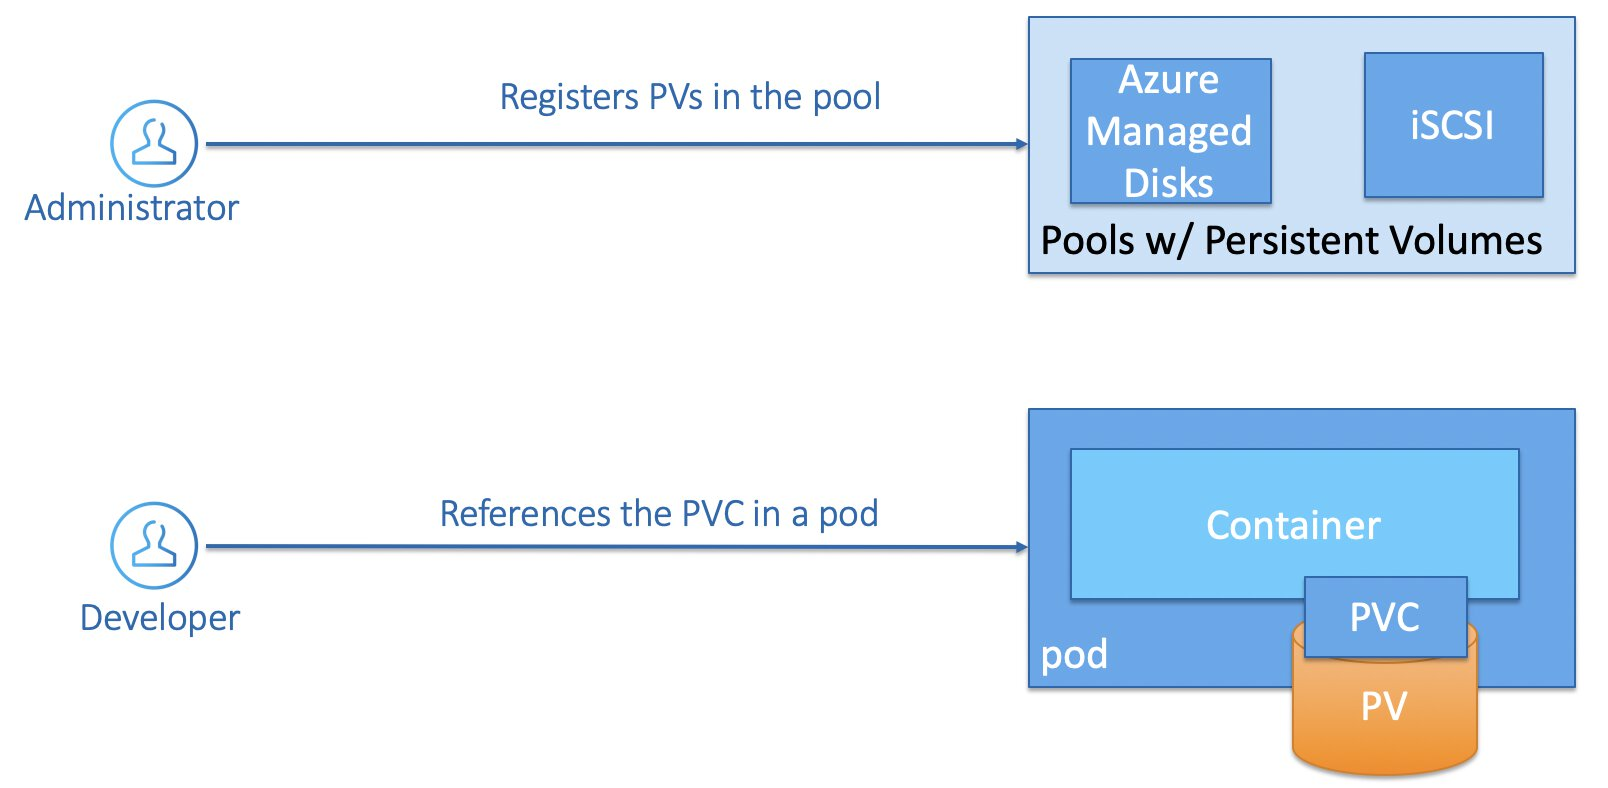 Static Storage Provisioning - PV & PVC with user referencing the PVC in a pod.